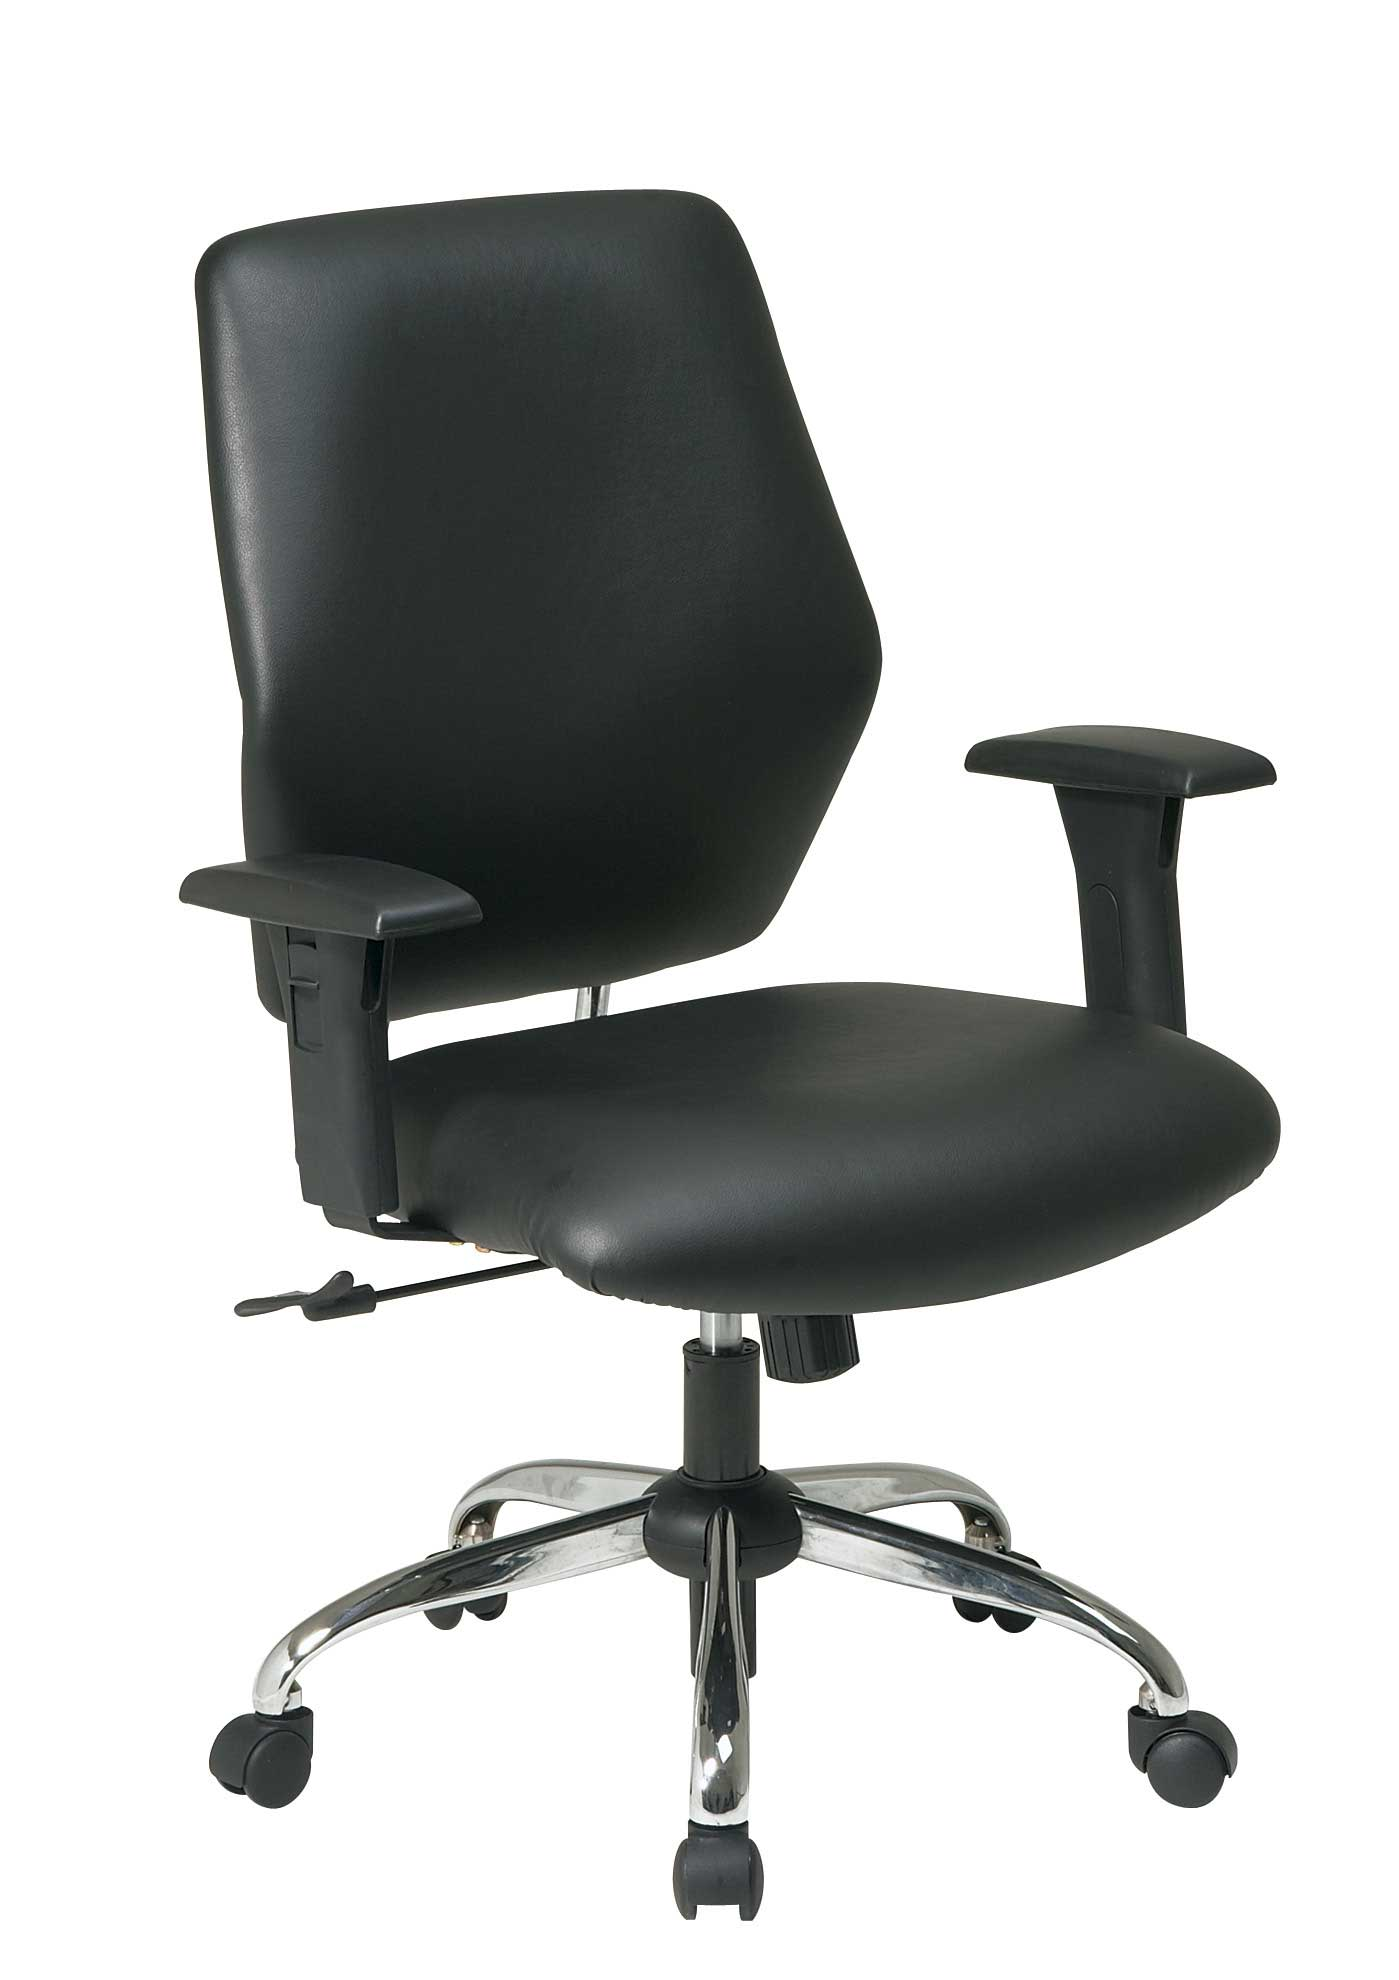 Office clipart office chair Office Office The Full Depot